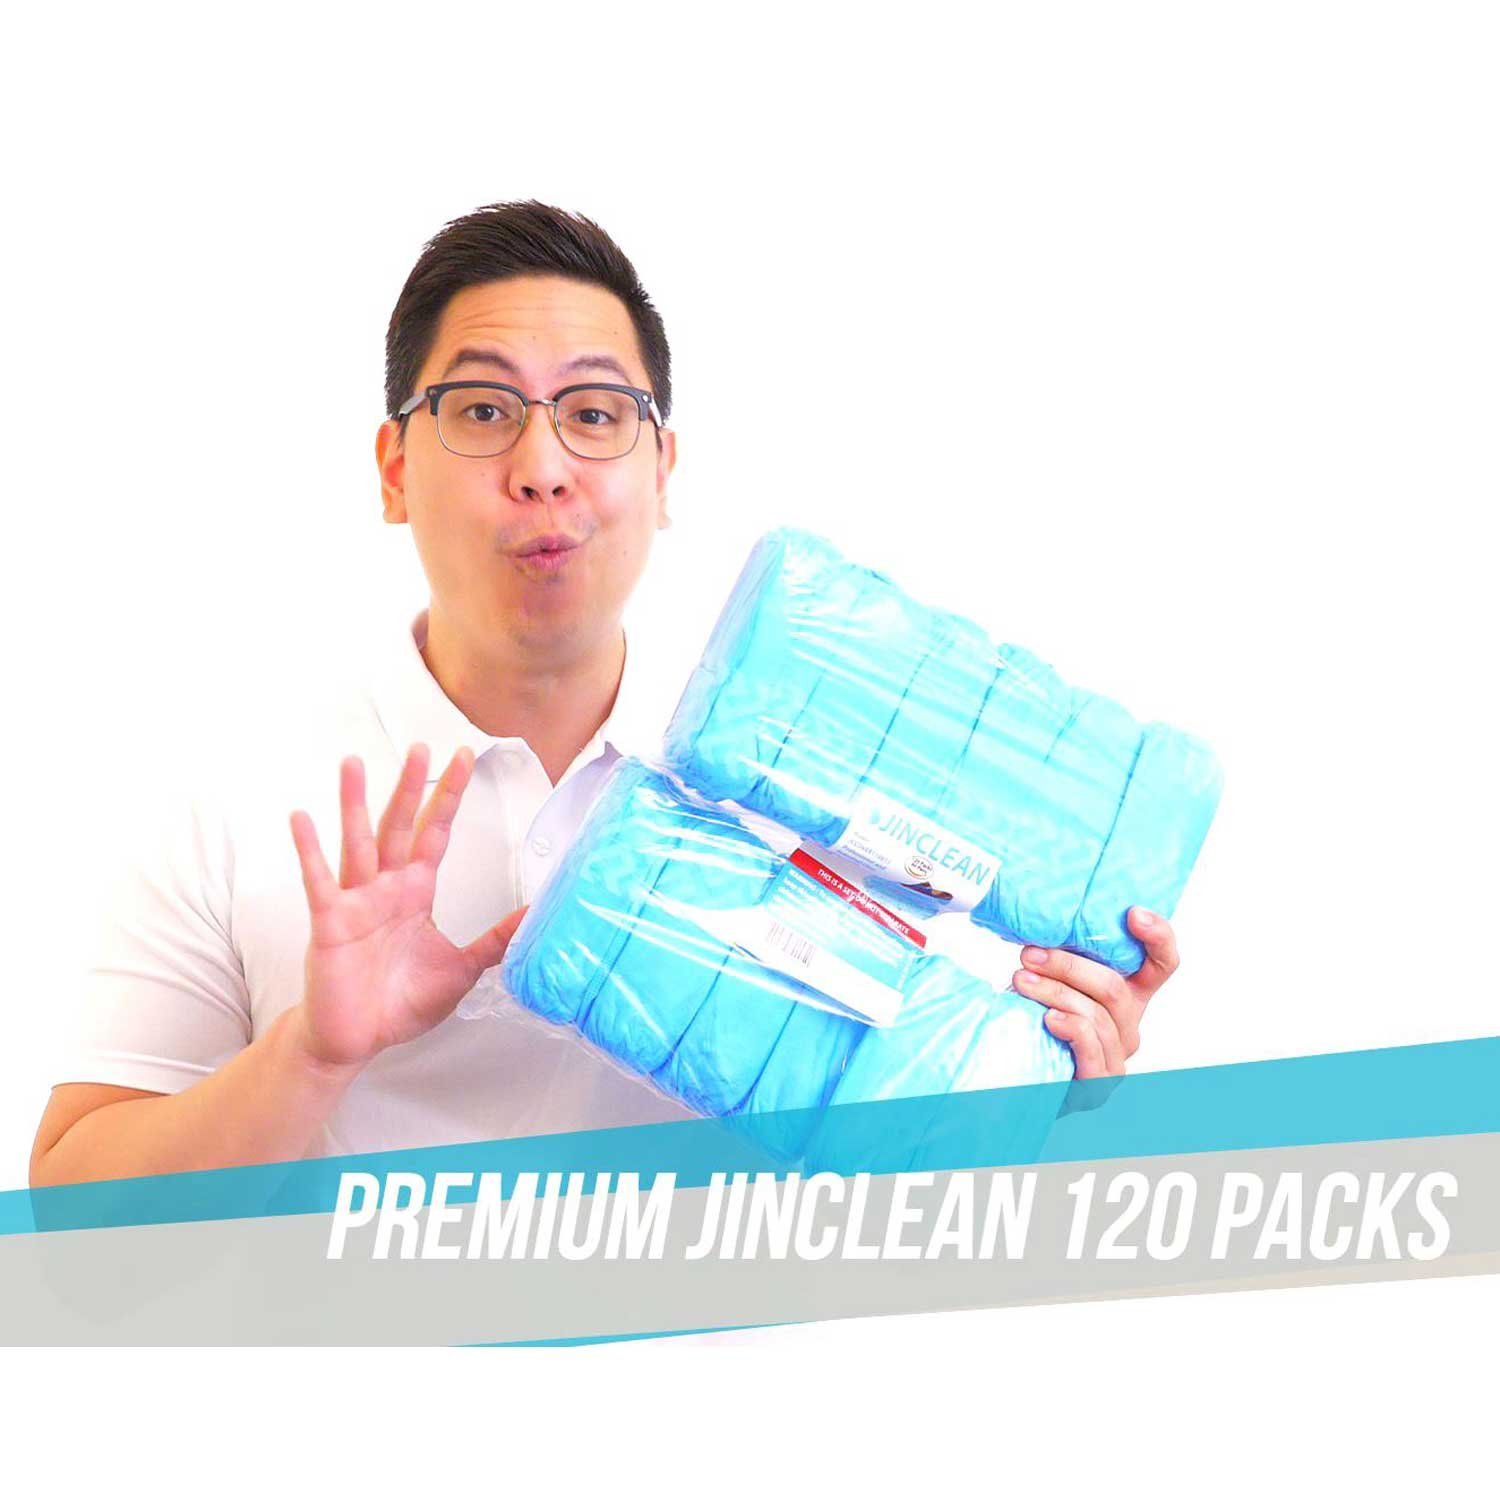 JINCLEAN Premium Shoe Covers 120Packs (60Pairs) | One Free Size Fits Most Max Length - 16.5'', Large US Men's 11 or less, Boots Covers, Water Resistant, Elastic on Sole Reduced Slip Technology by JINCLEAN (Image #6)